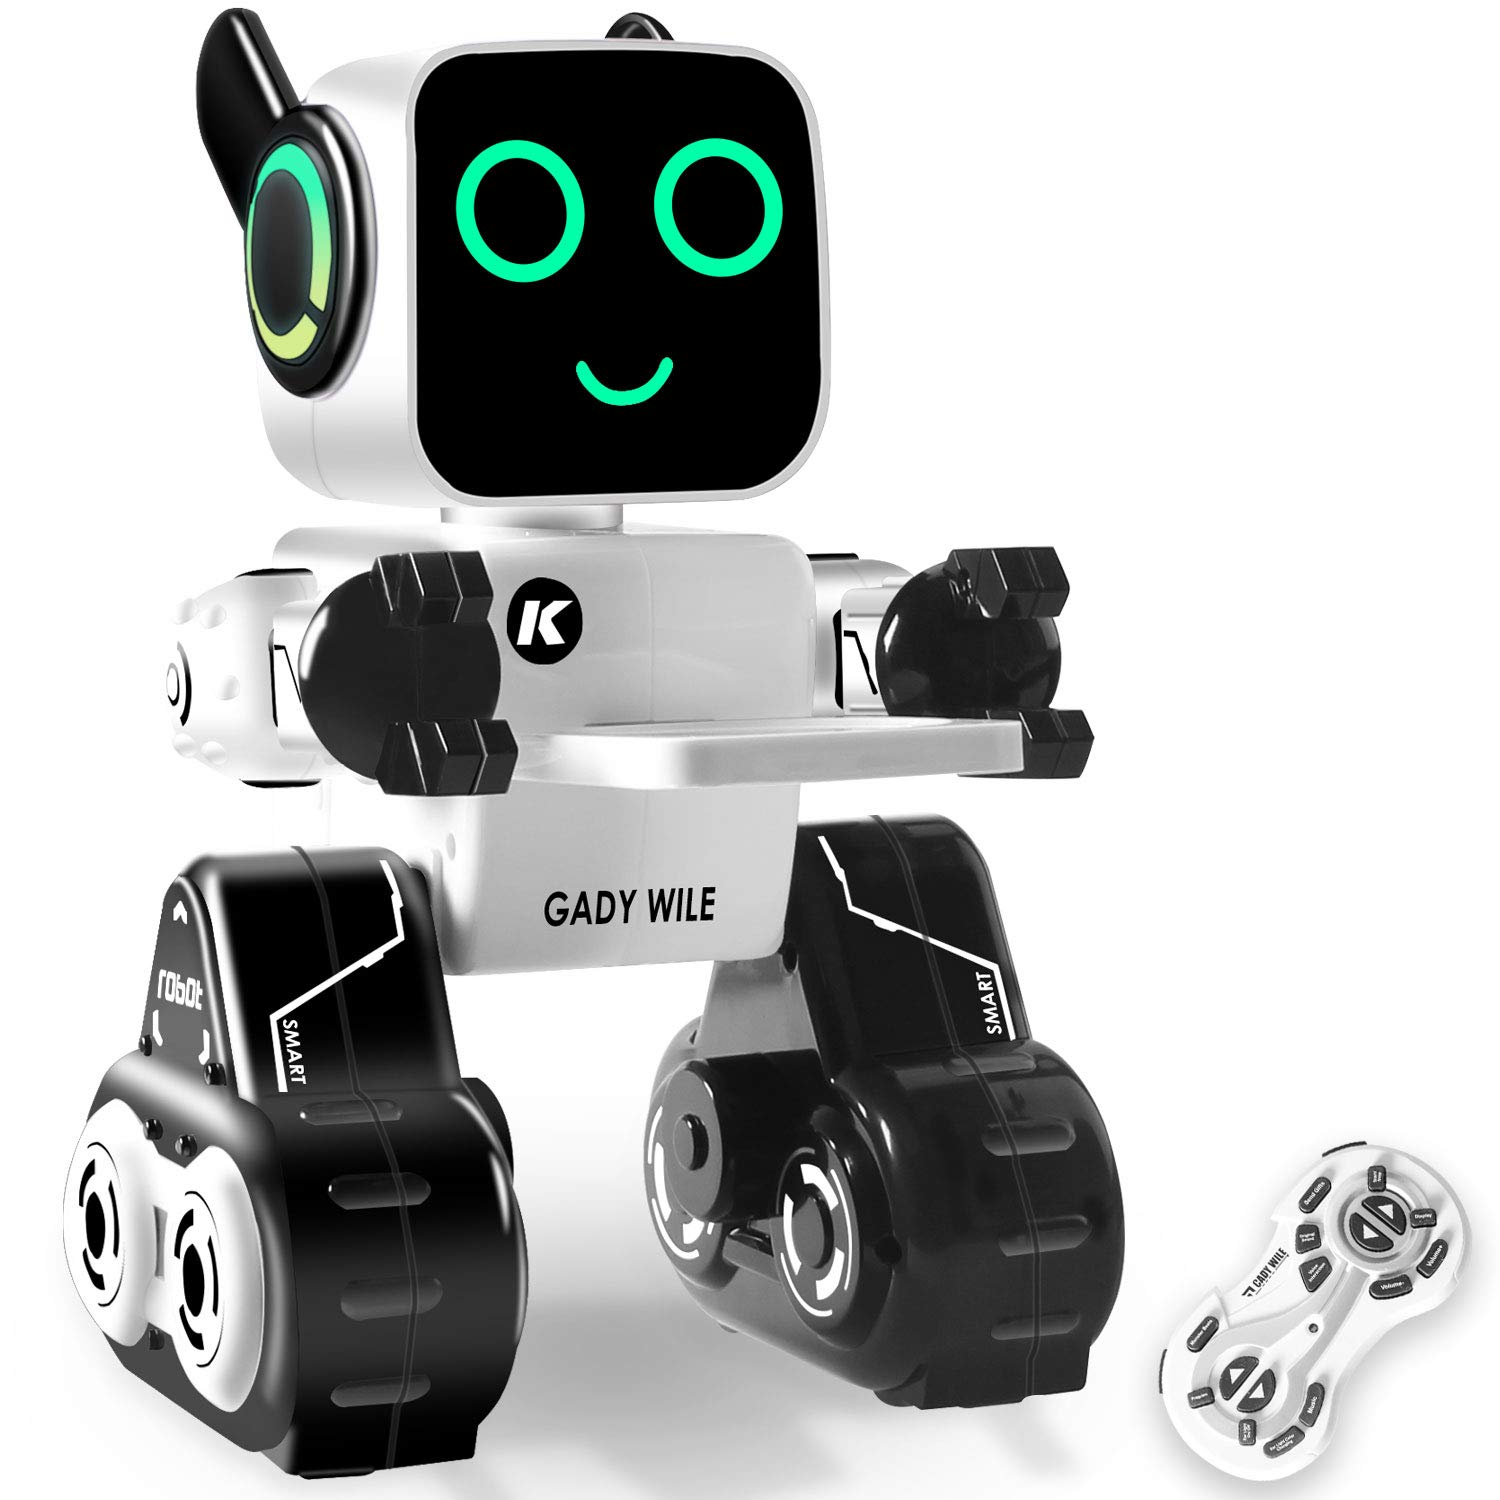 KIDdesigns Remote Control Toy Robot for kids,Touch & Sound Control, Light-up Eyes & Mouth. Built-in Coin Bank. Programmable, Rechargeable RC Robot Kit for Boys, Girls All Ages.